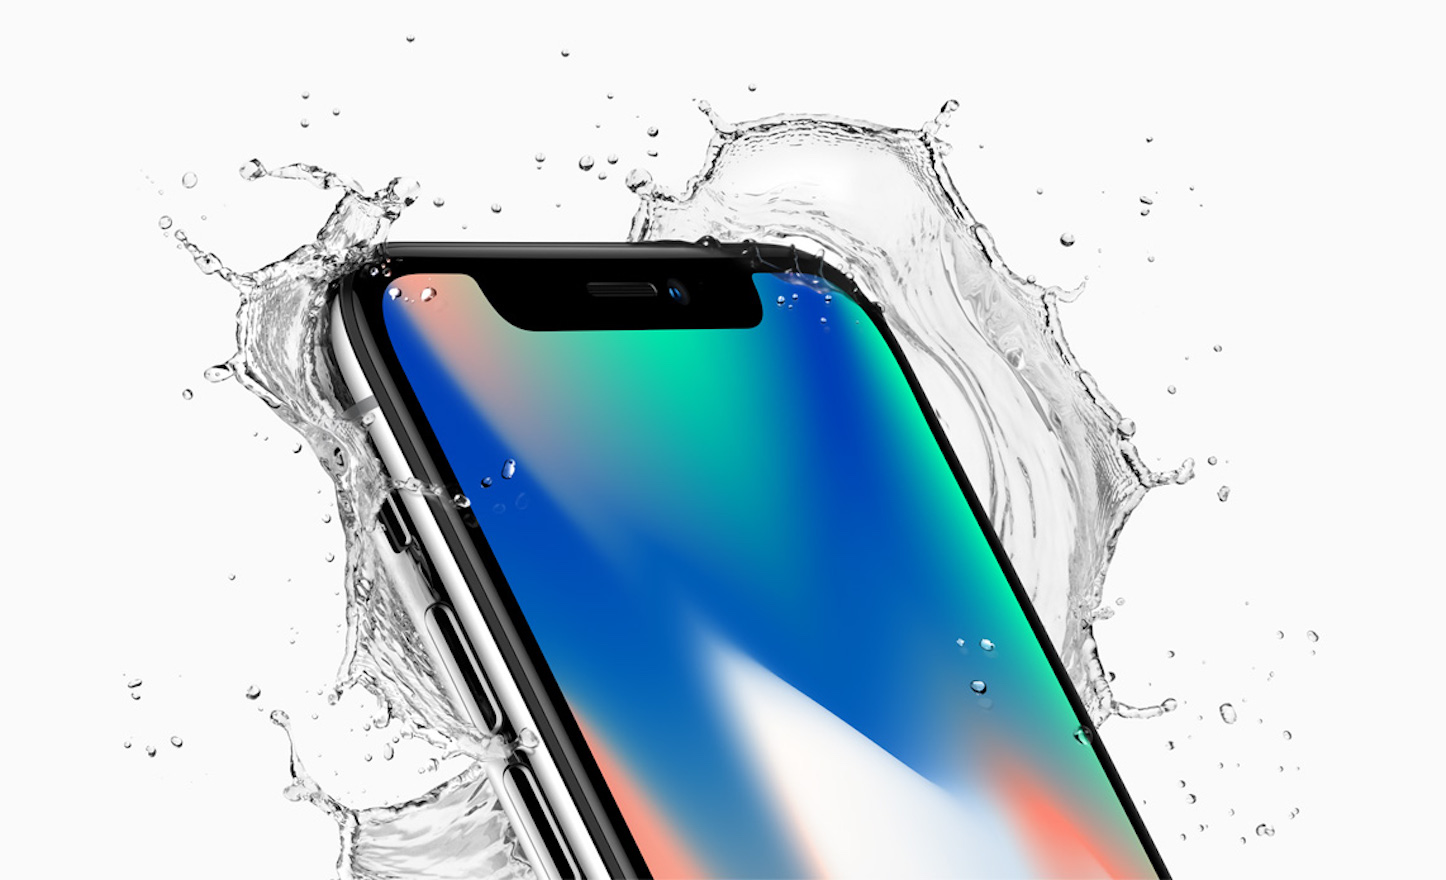 Iphonex front crop top corner splash